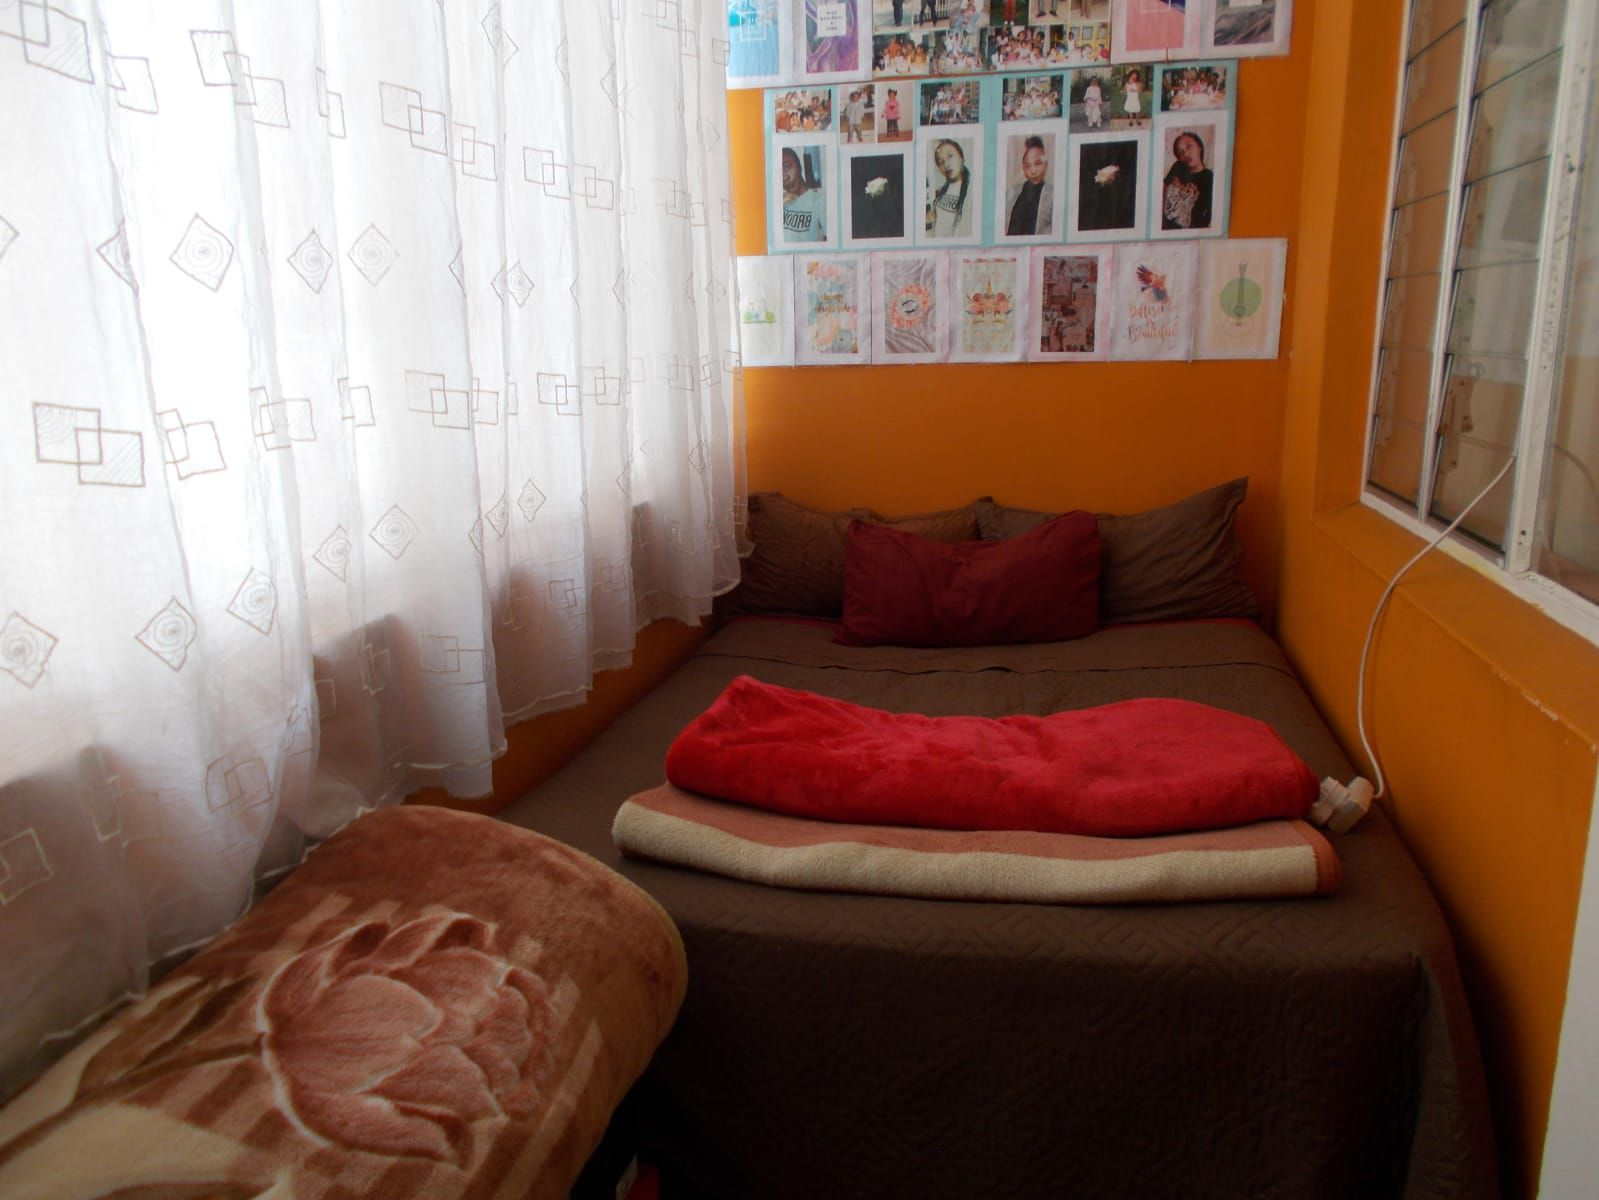 Apartment in Hillbrow - WhatsApp Image 2021-01-12 at 13.04.41 (4).jpeg